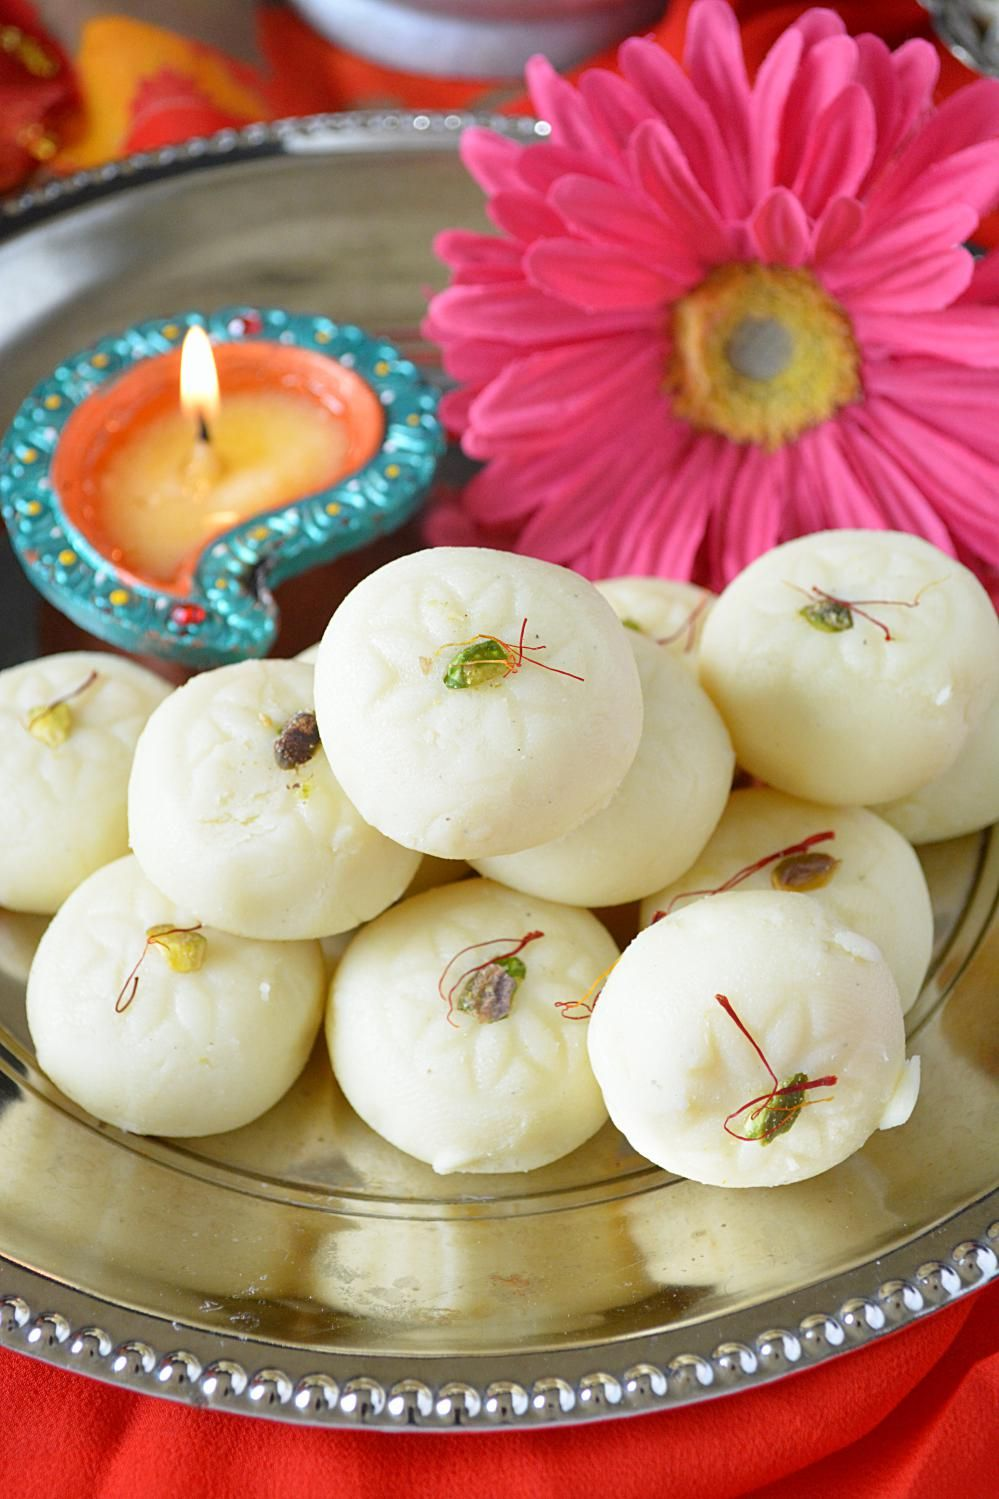 Milk Peda Recipe also known as doodh peda, is a favorite Indian sweet made with mawa (milk solids) & flavored with cardamom & nuts. It's so deliciously rich & creamy that it will melt in your mouth. #peda #diwali #diwalisweets #doodhpeda #indiansweets #milkpeda #milkfudge